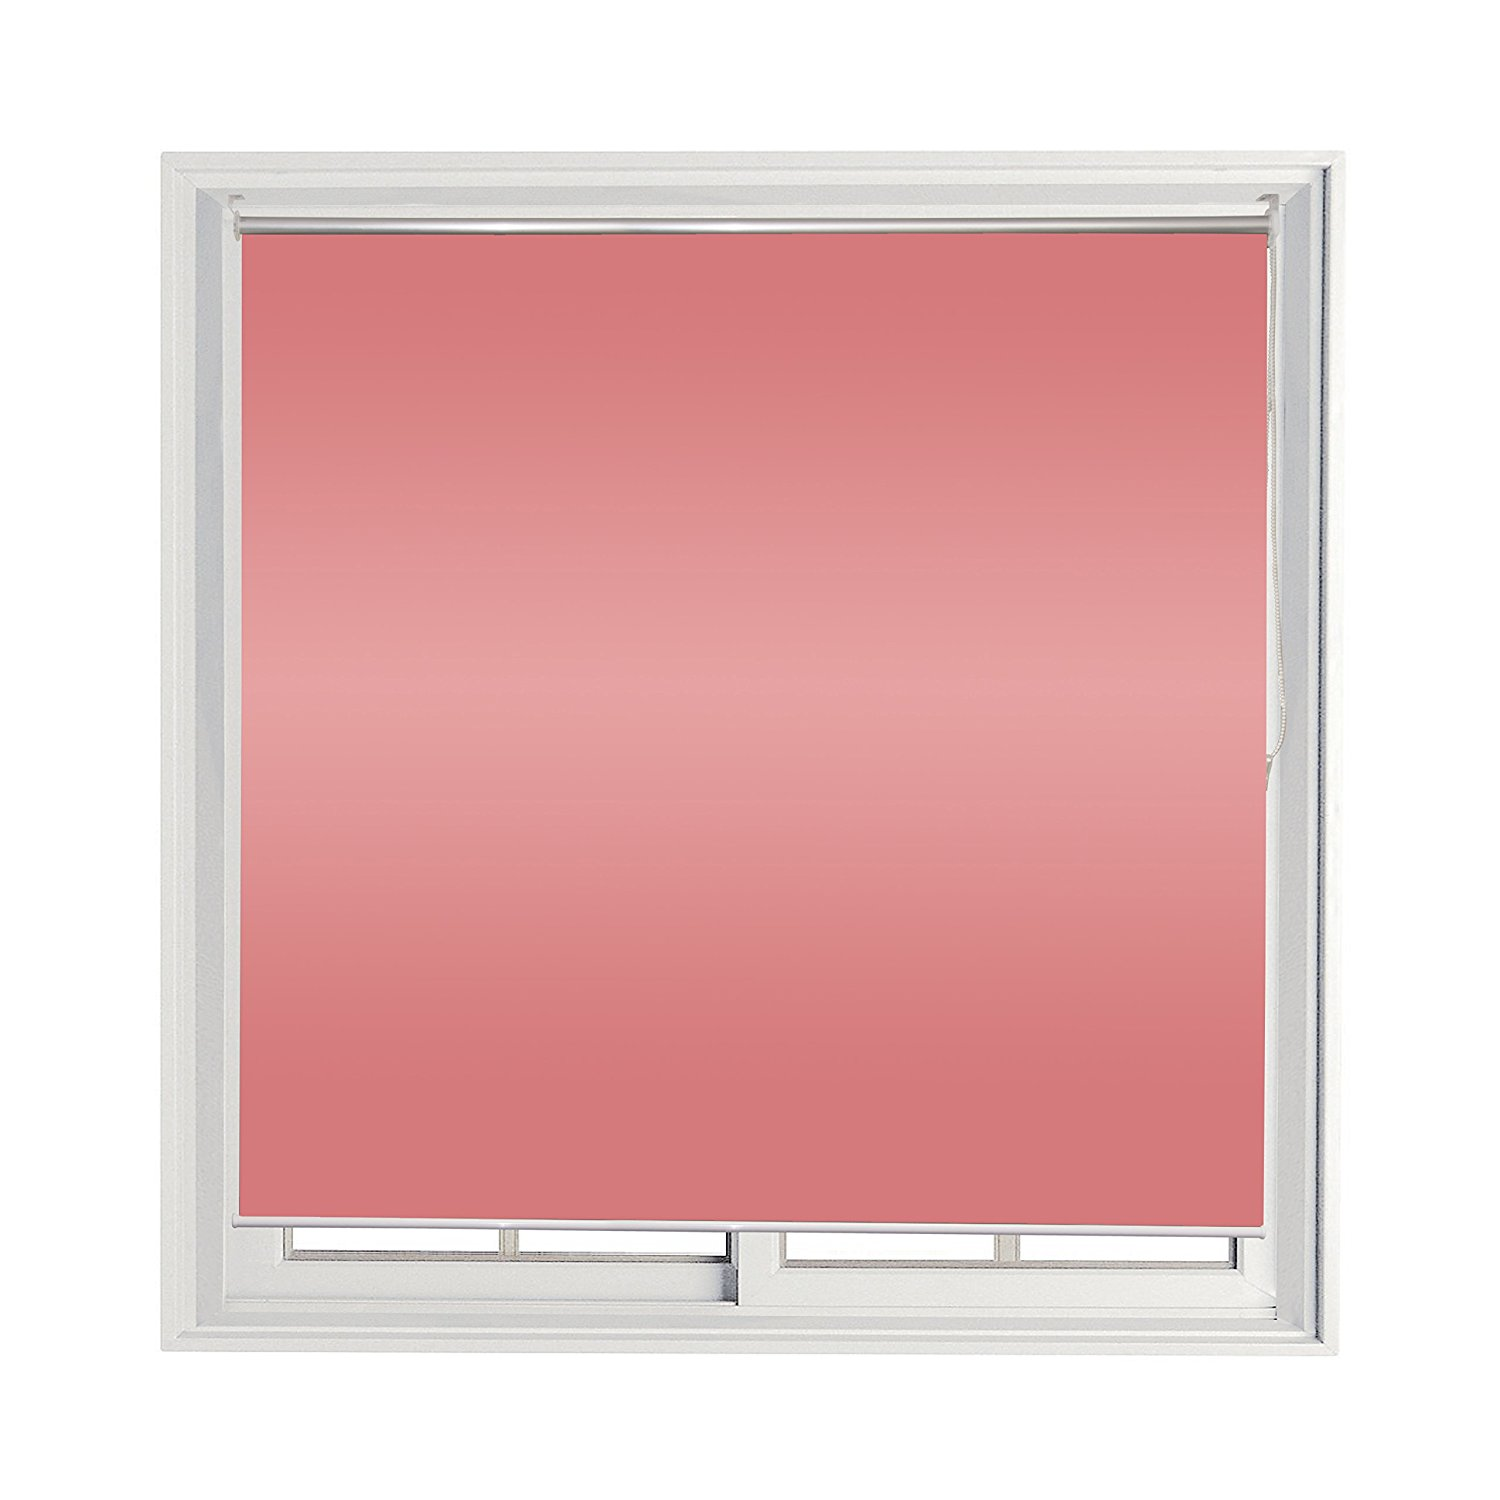 Roll Up Shade Windscreen Sunshade Blinds 72 X 72 Inches, Pink